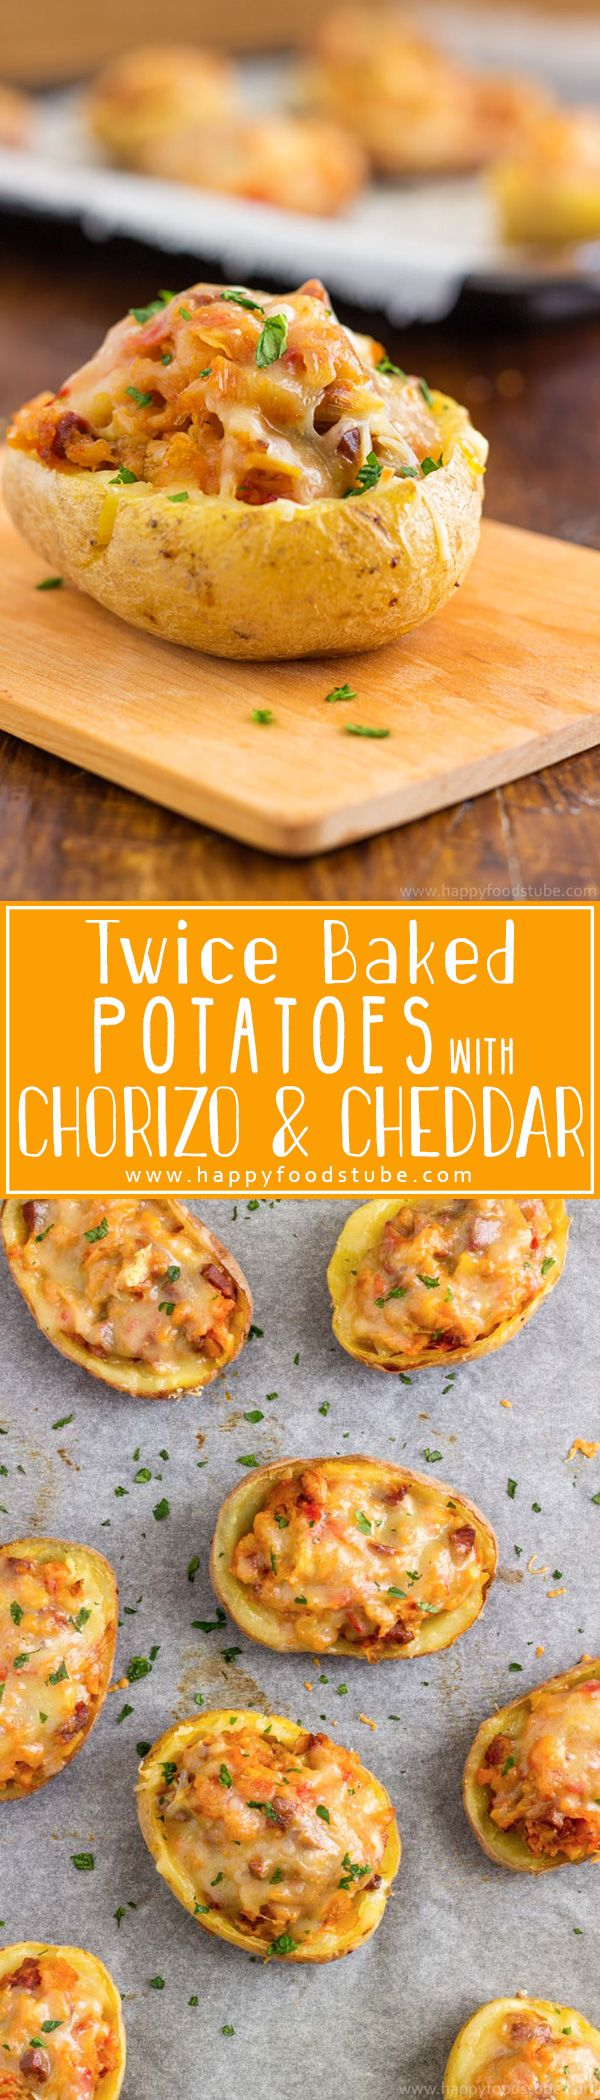 Twice baked potatoes with chorizo and cheddar can be enjoyed as an appetizer, side dish or a main! They are rich, filling and most of all delicious! Super easy recipe!   happyfoodstube.com